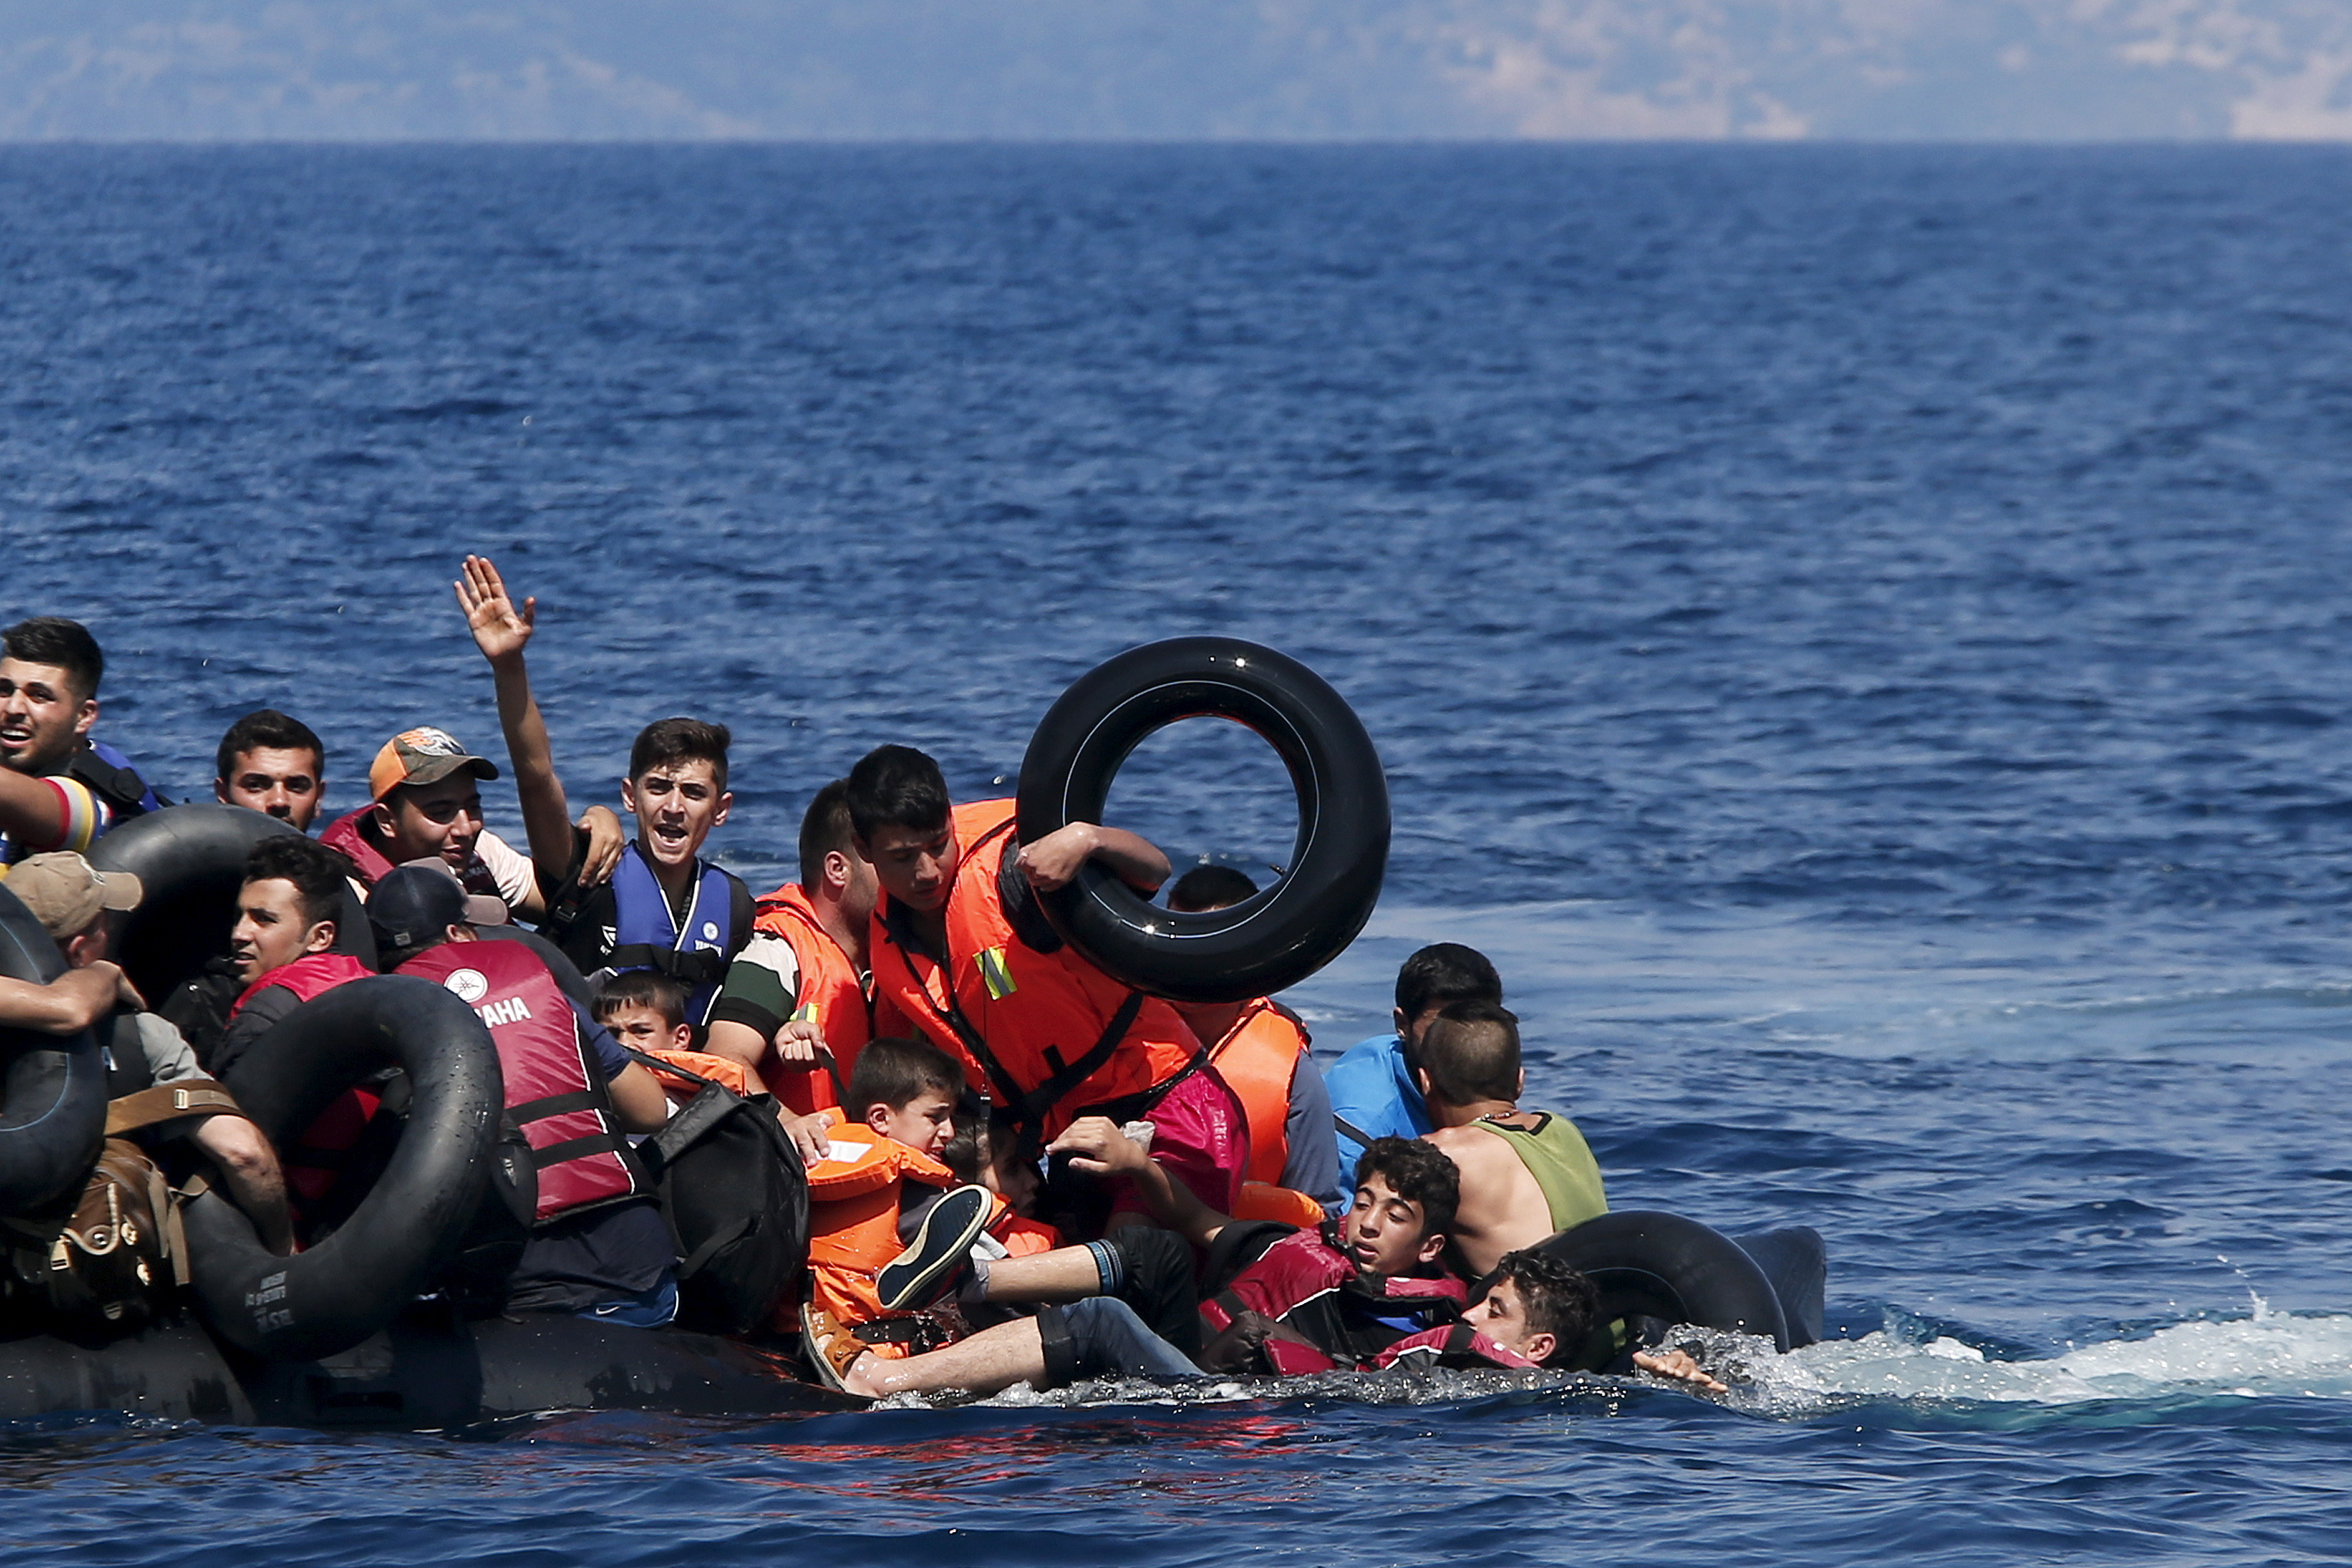 Syrian and Afghan refugees fall into the sea after their dinghy deflated some 100m away before reaching the Greek island of Lesbos, September 13, 2015. Of the record total of 432,761 refugees and migrants making the perilous journey across the Mediterranean to Europe so far this year, an estimated 309,000 people had arrived by sea in Greece, the International Organization for Migration (IMO) said on Friday. About half of those crossing the Mediterranean are Syrians fleeing civil war, according to the United Nations refugee agency. Photo by Alkis Konstantinidis/Reuters